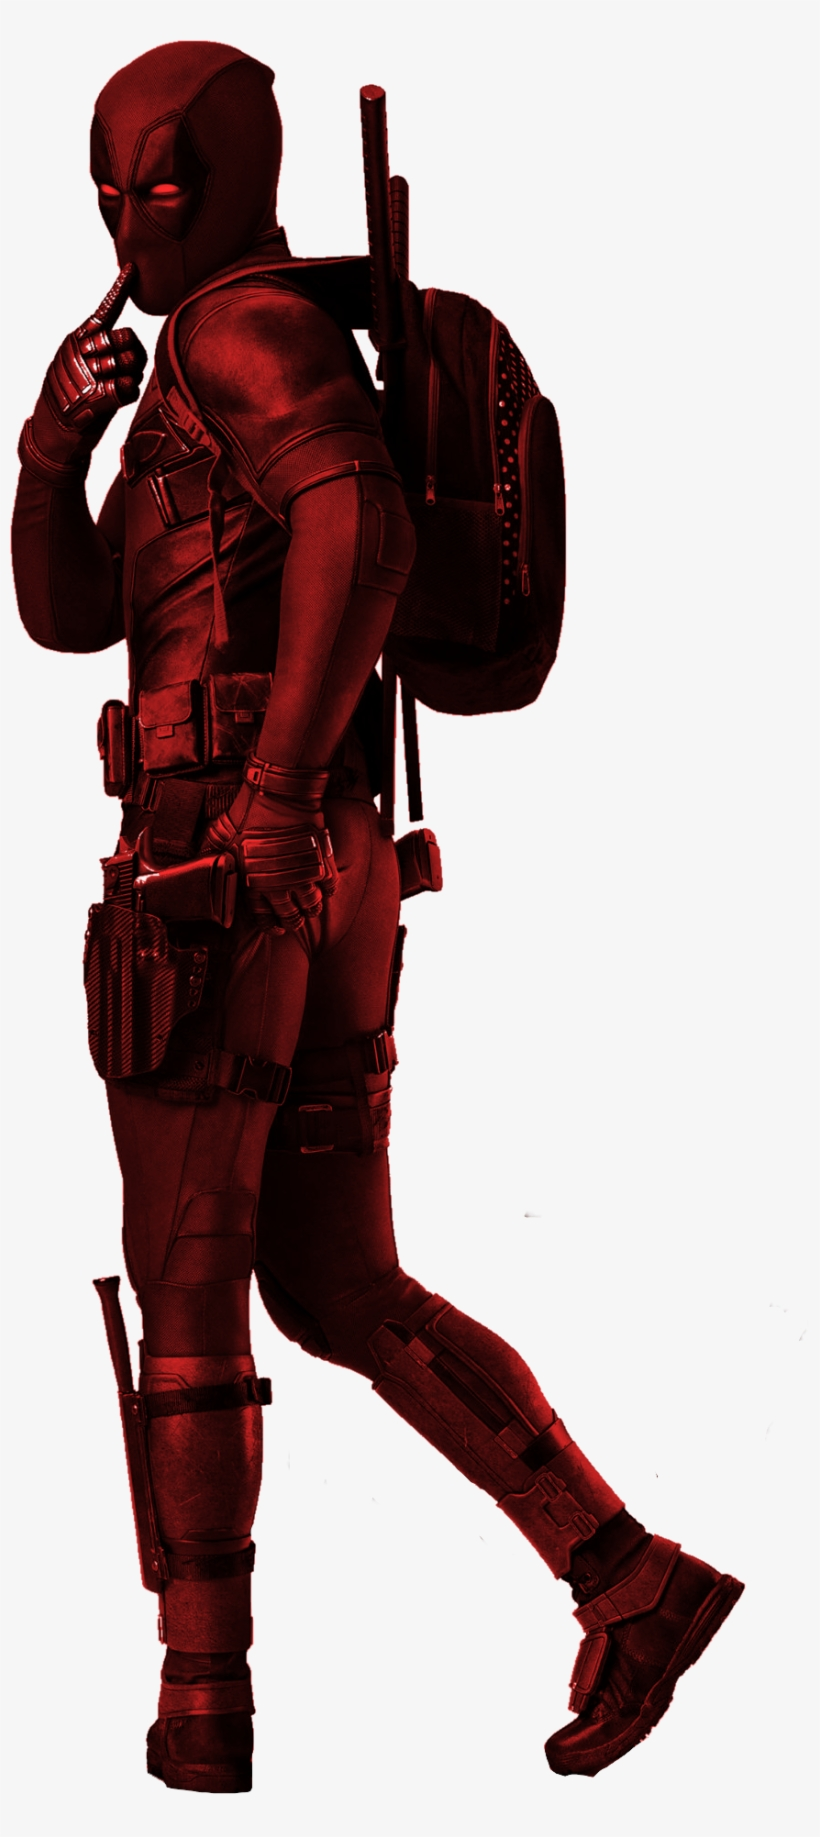 Ydd7tts Deadpool Wallpaper 4k Android Transparent Png